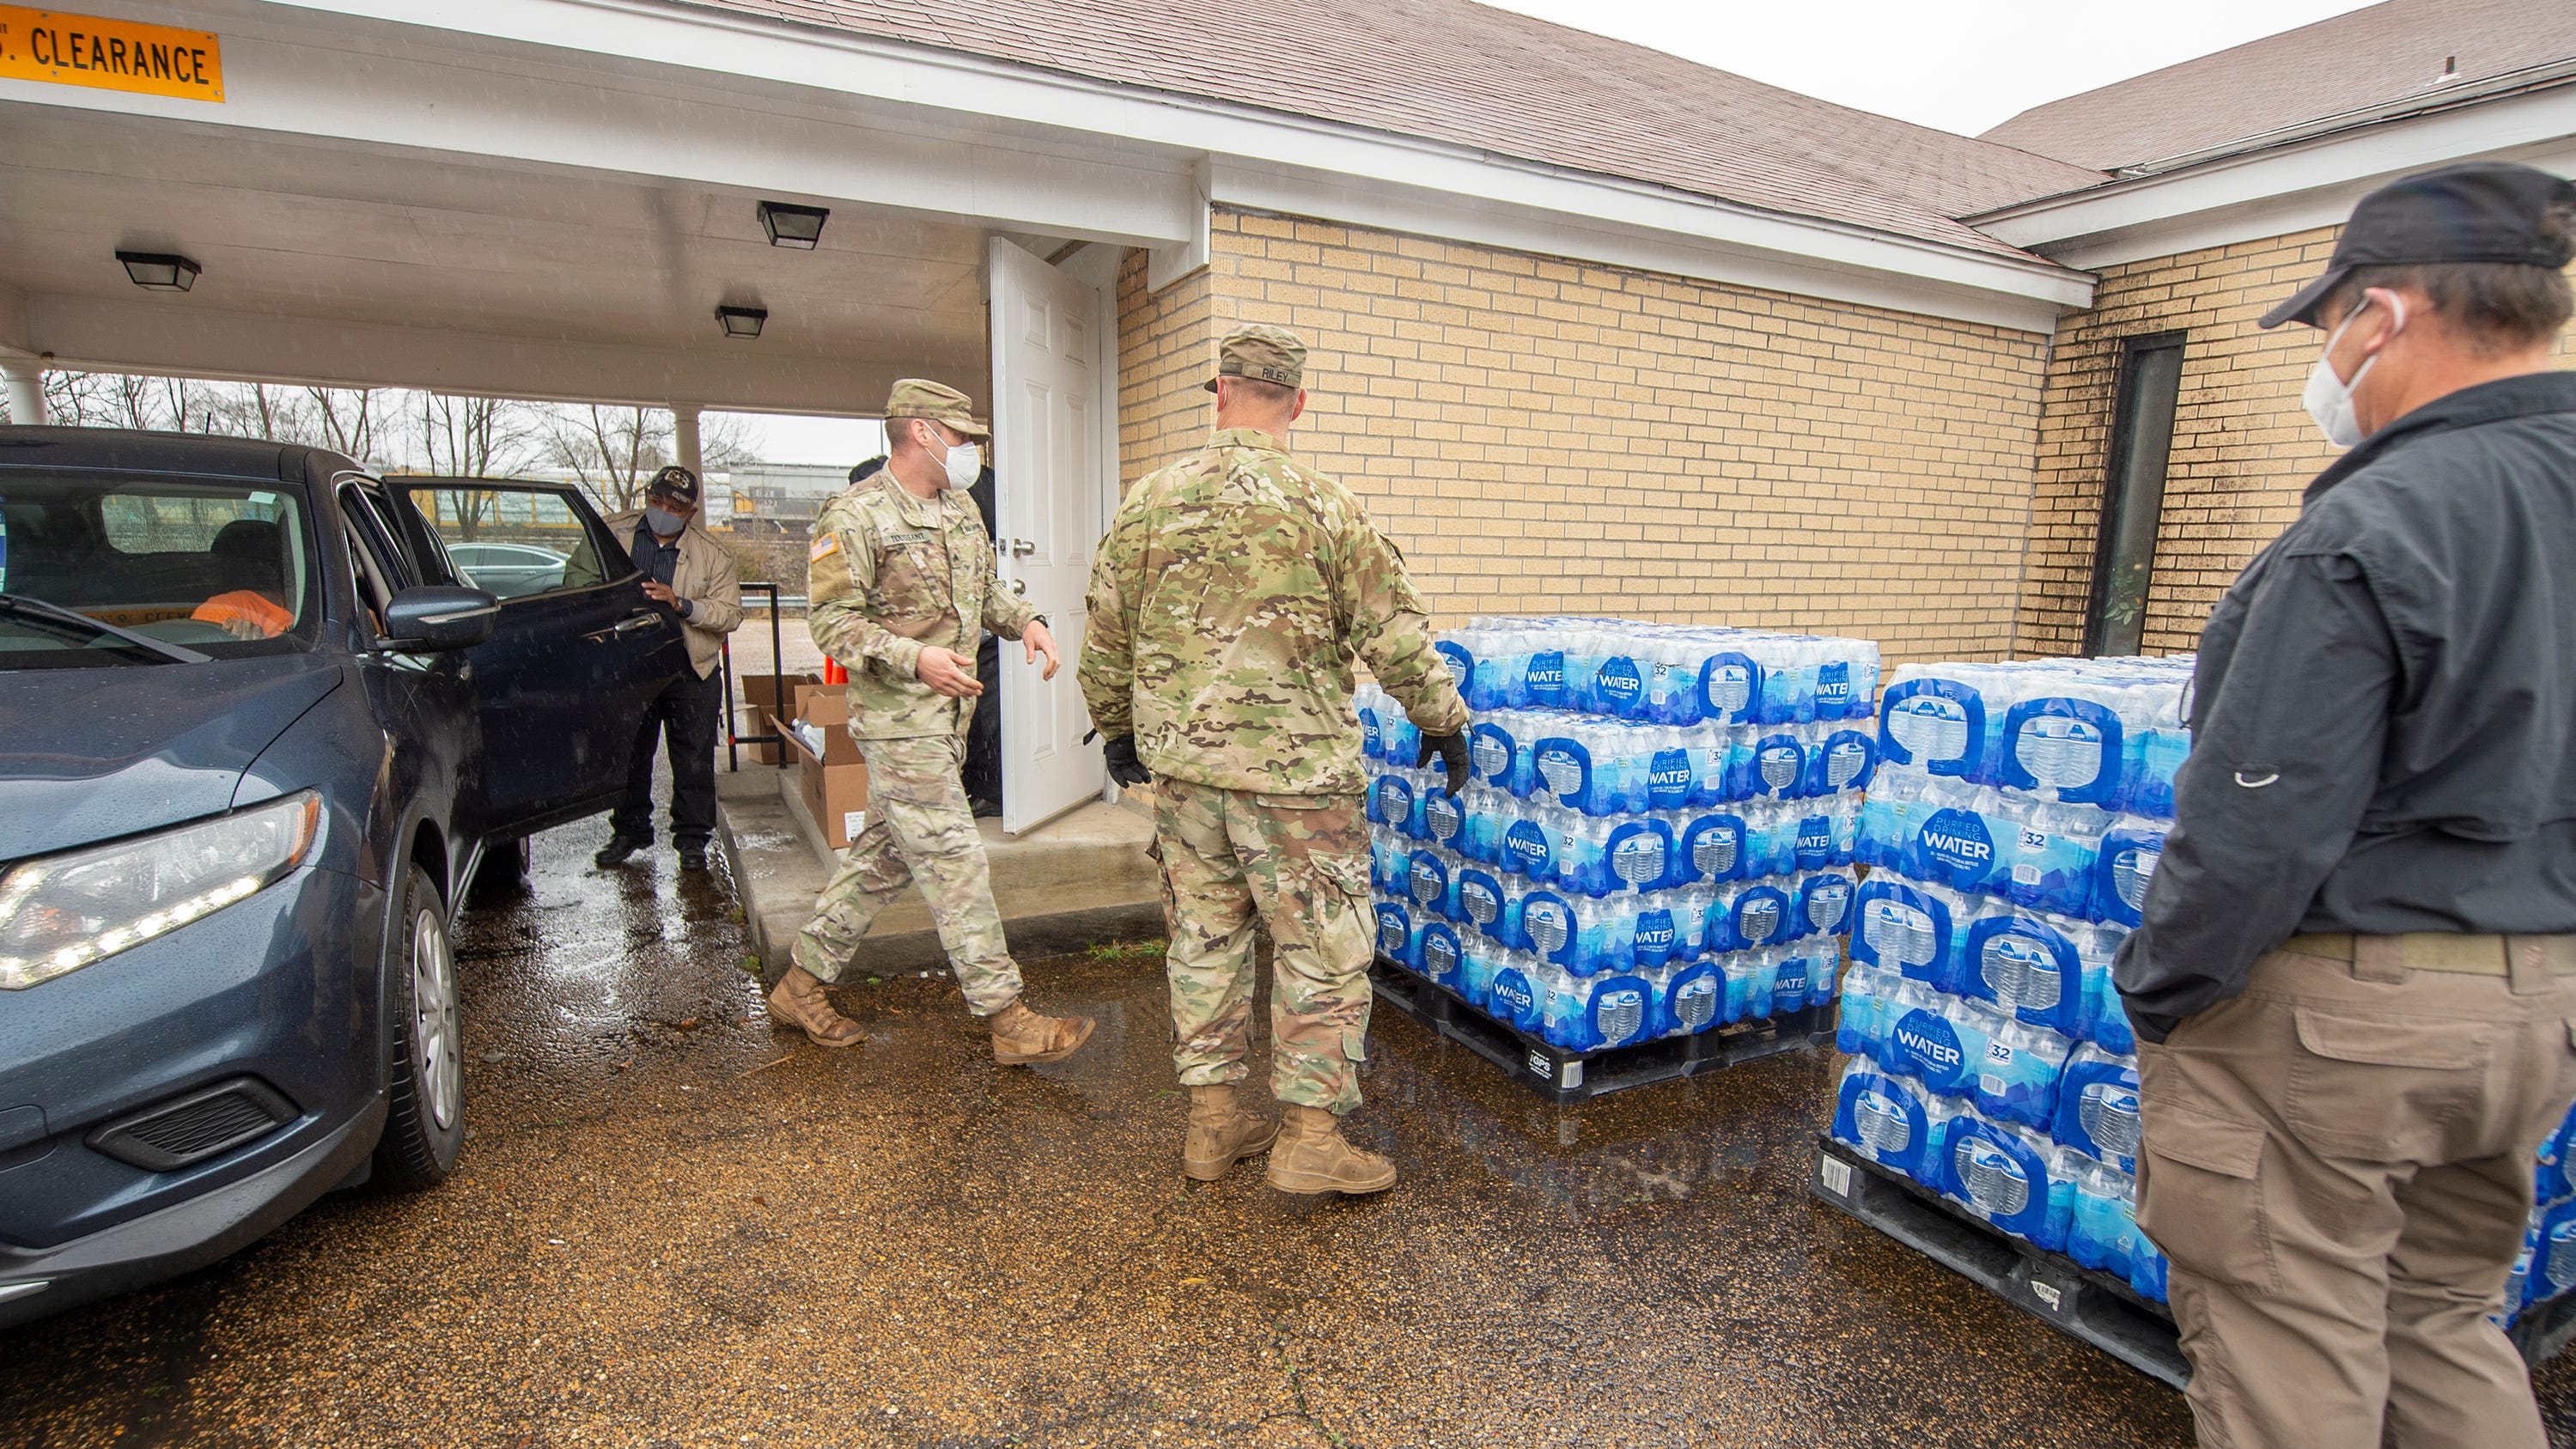 Jackson pastor reaches out to city offering help during water crisis - Jackson Clarion Ledger